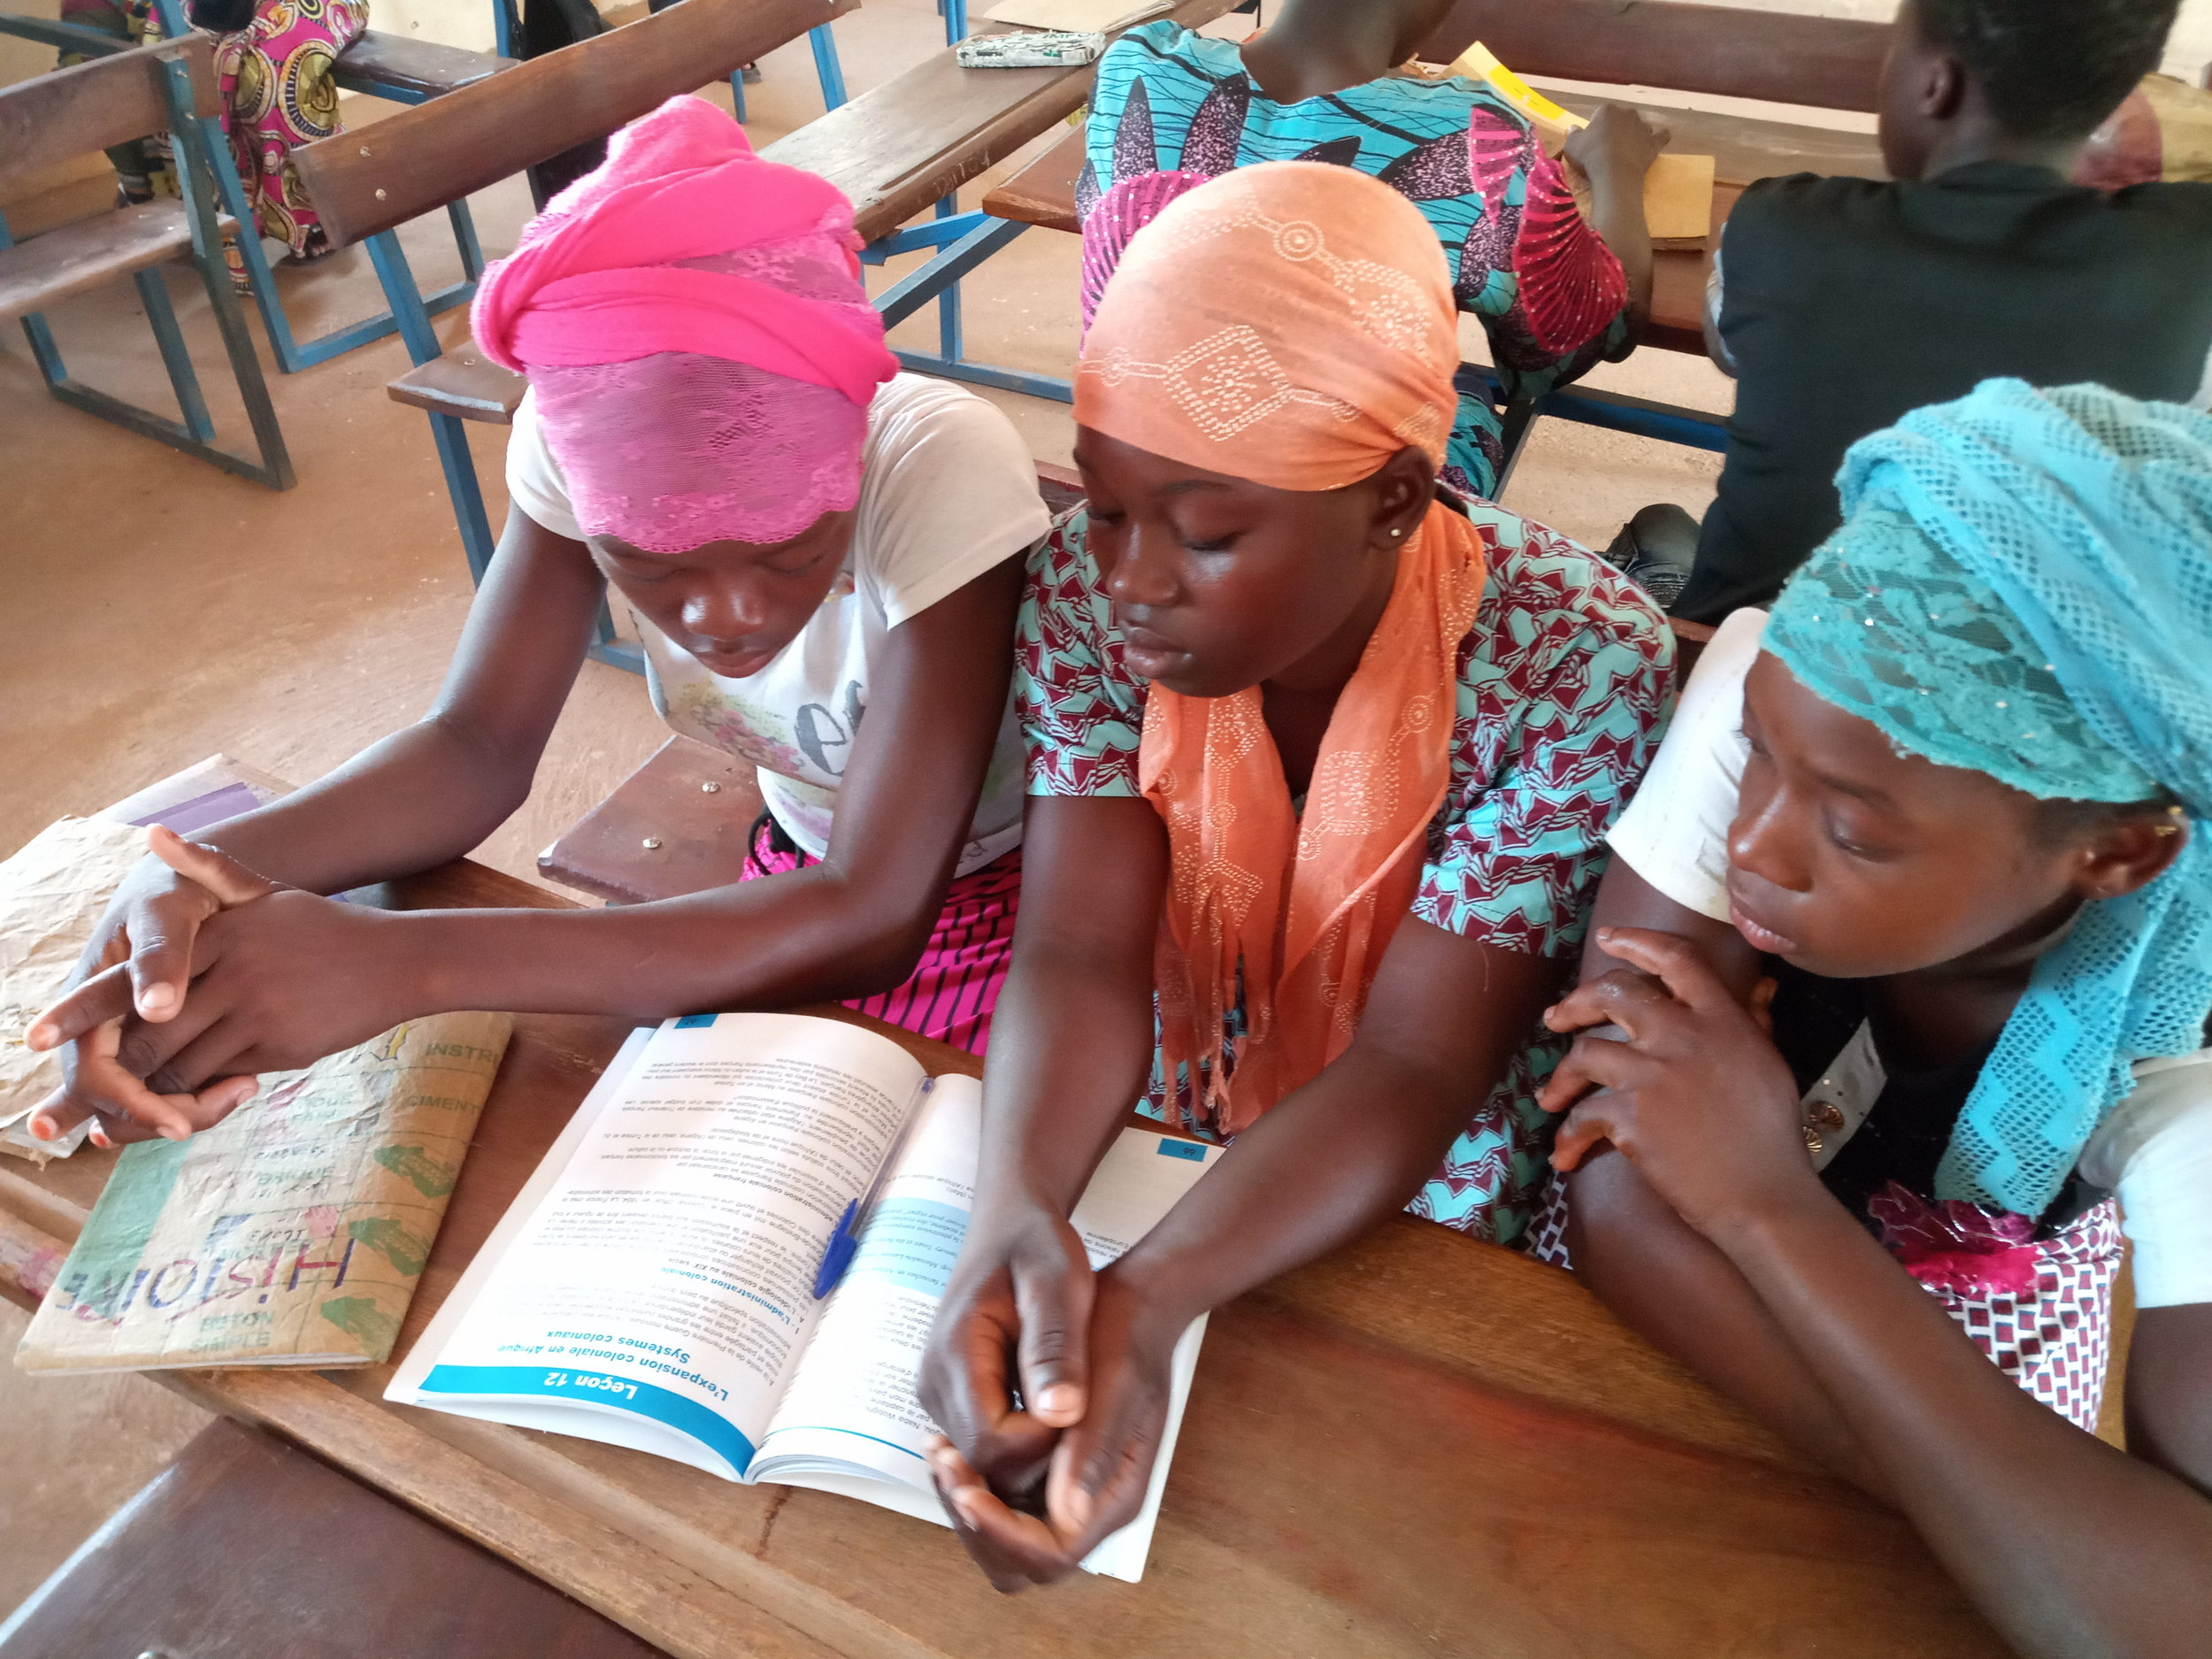 Three girls work together on a lesson in Souleyman's class. Encouraging teachers to use more engaging, active learning strategies is crucial in Mali, .